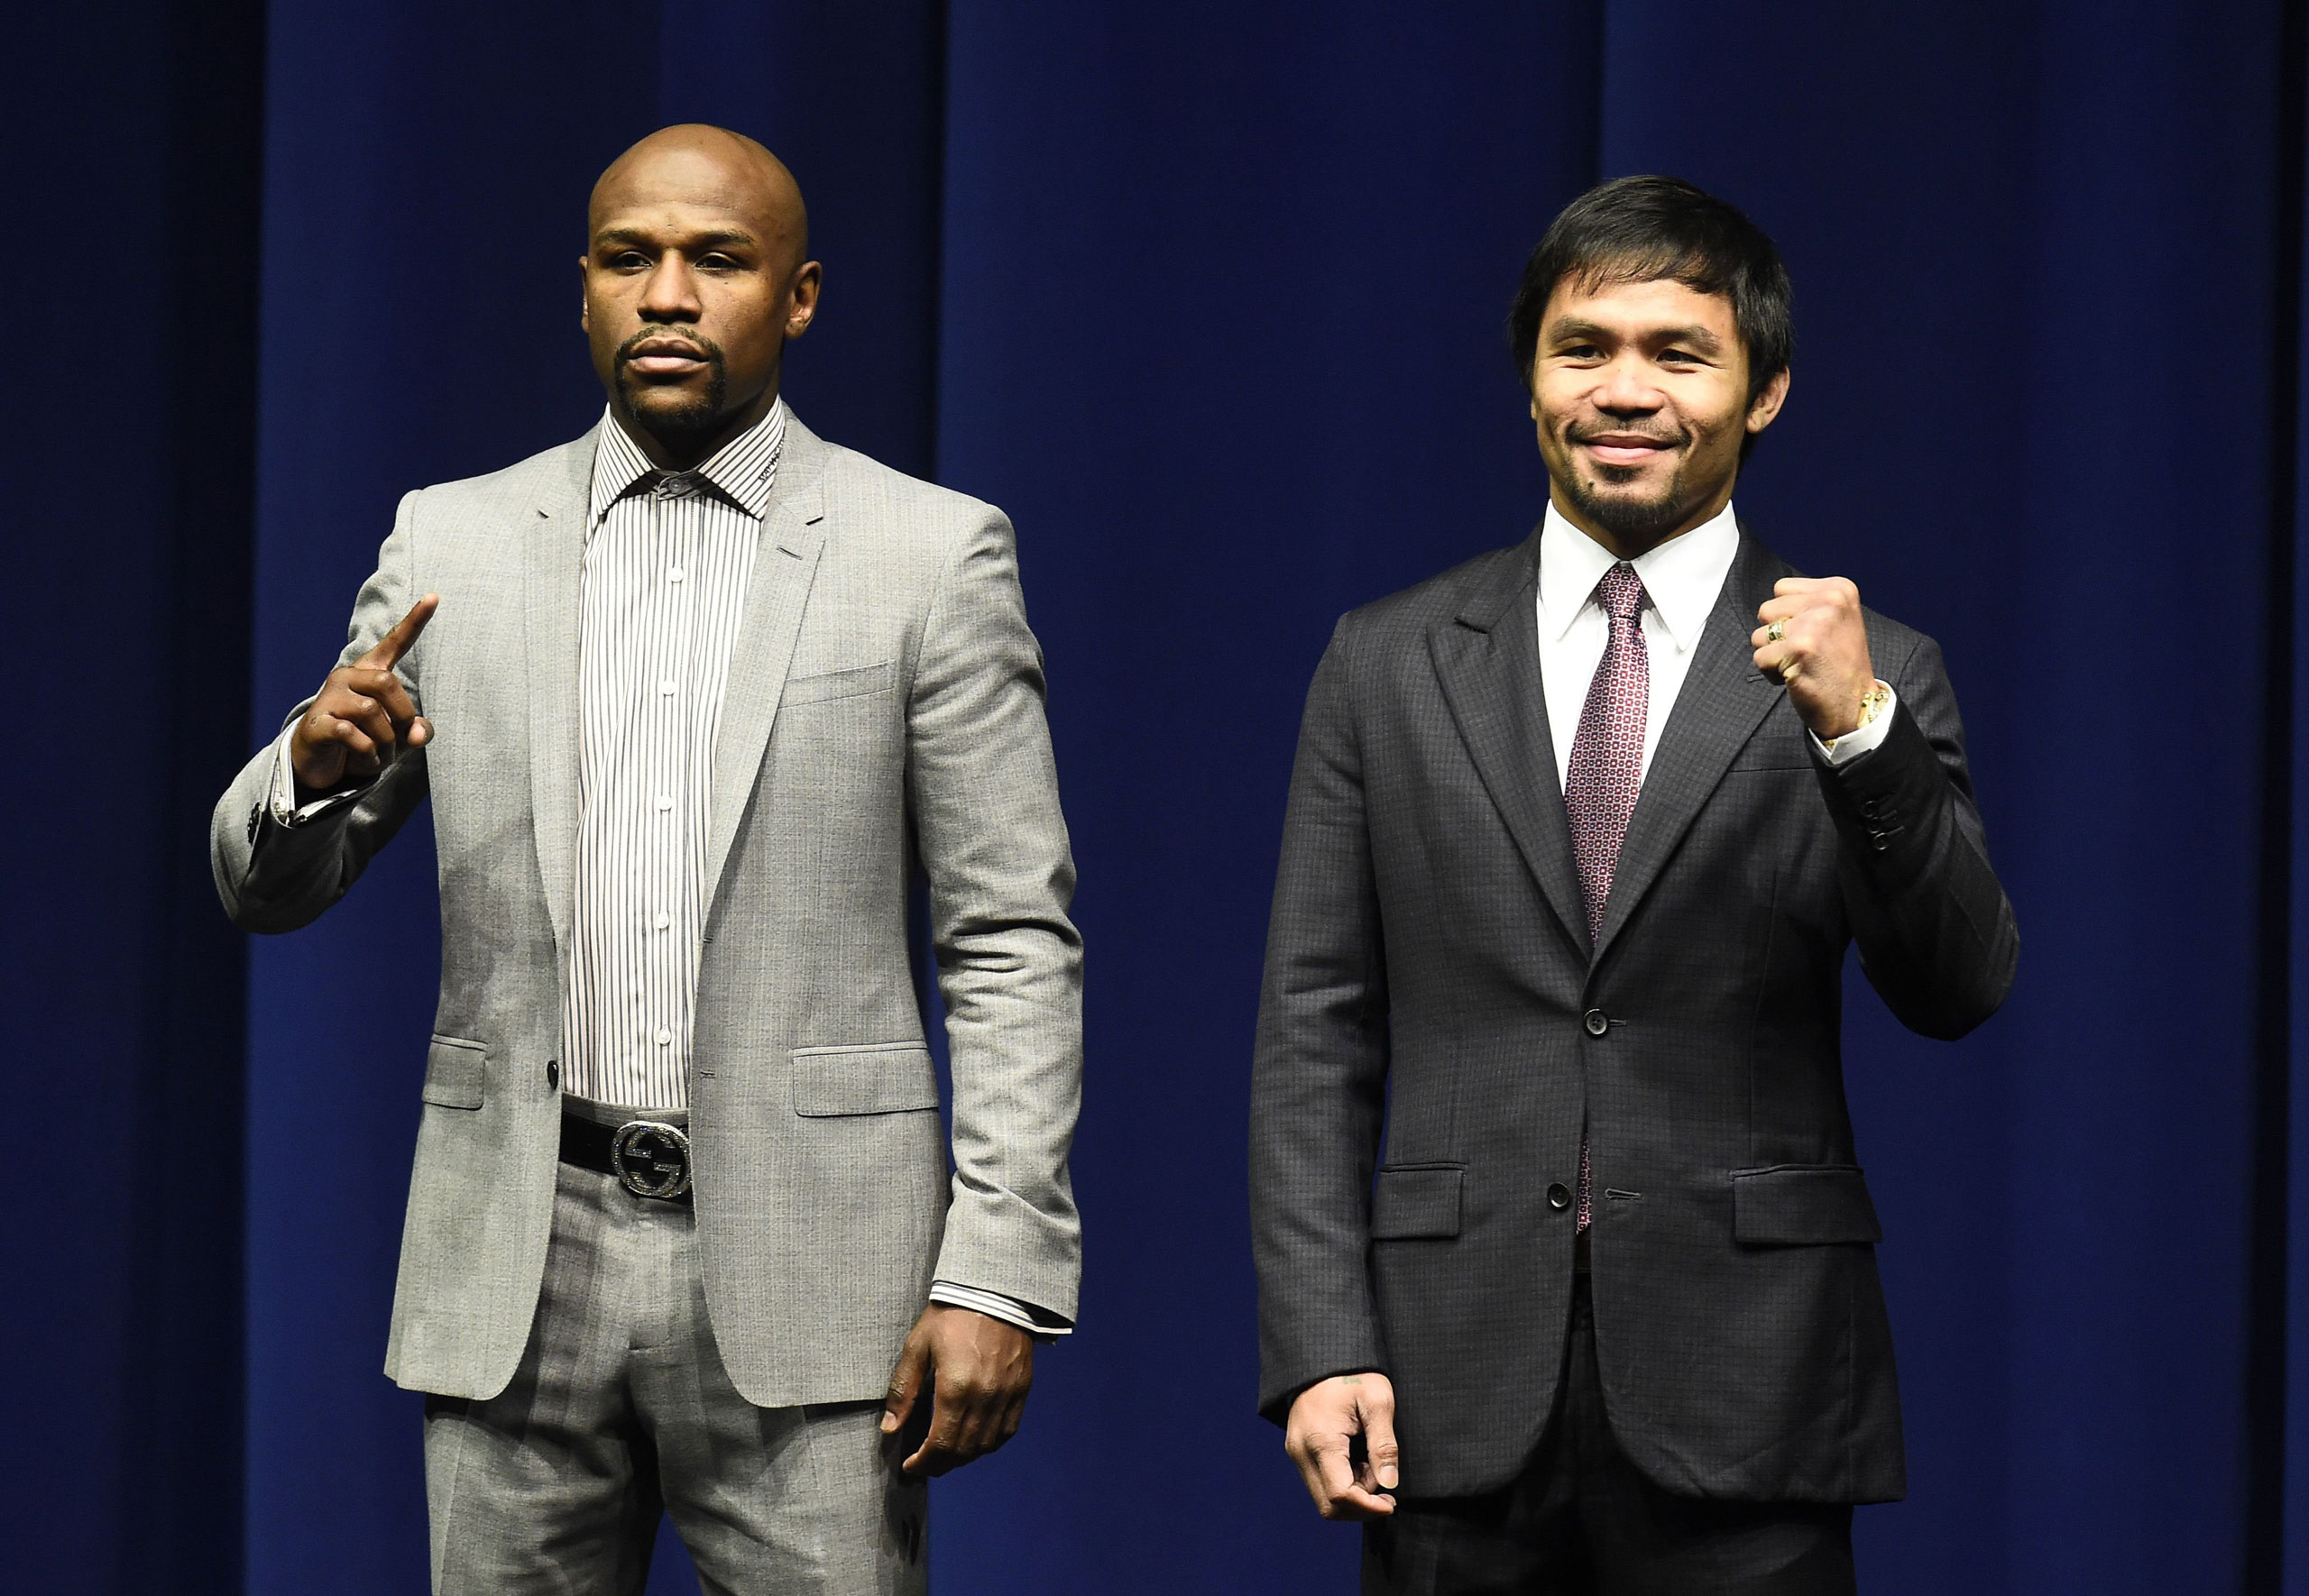 Boxers Floyd Mayweather Jr, left, and Manny Pacquiao gesture during a press conference on March 11, 2015 at the Nokia Theatre in Los Angeles.